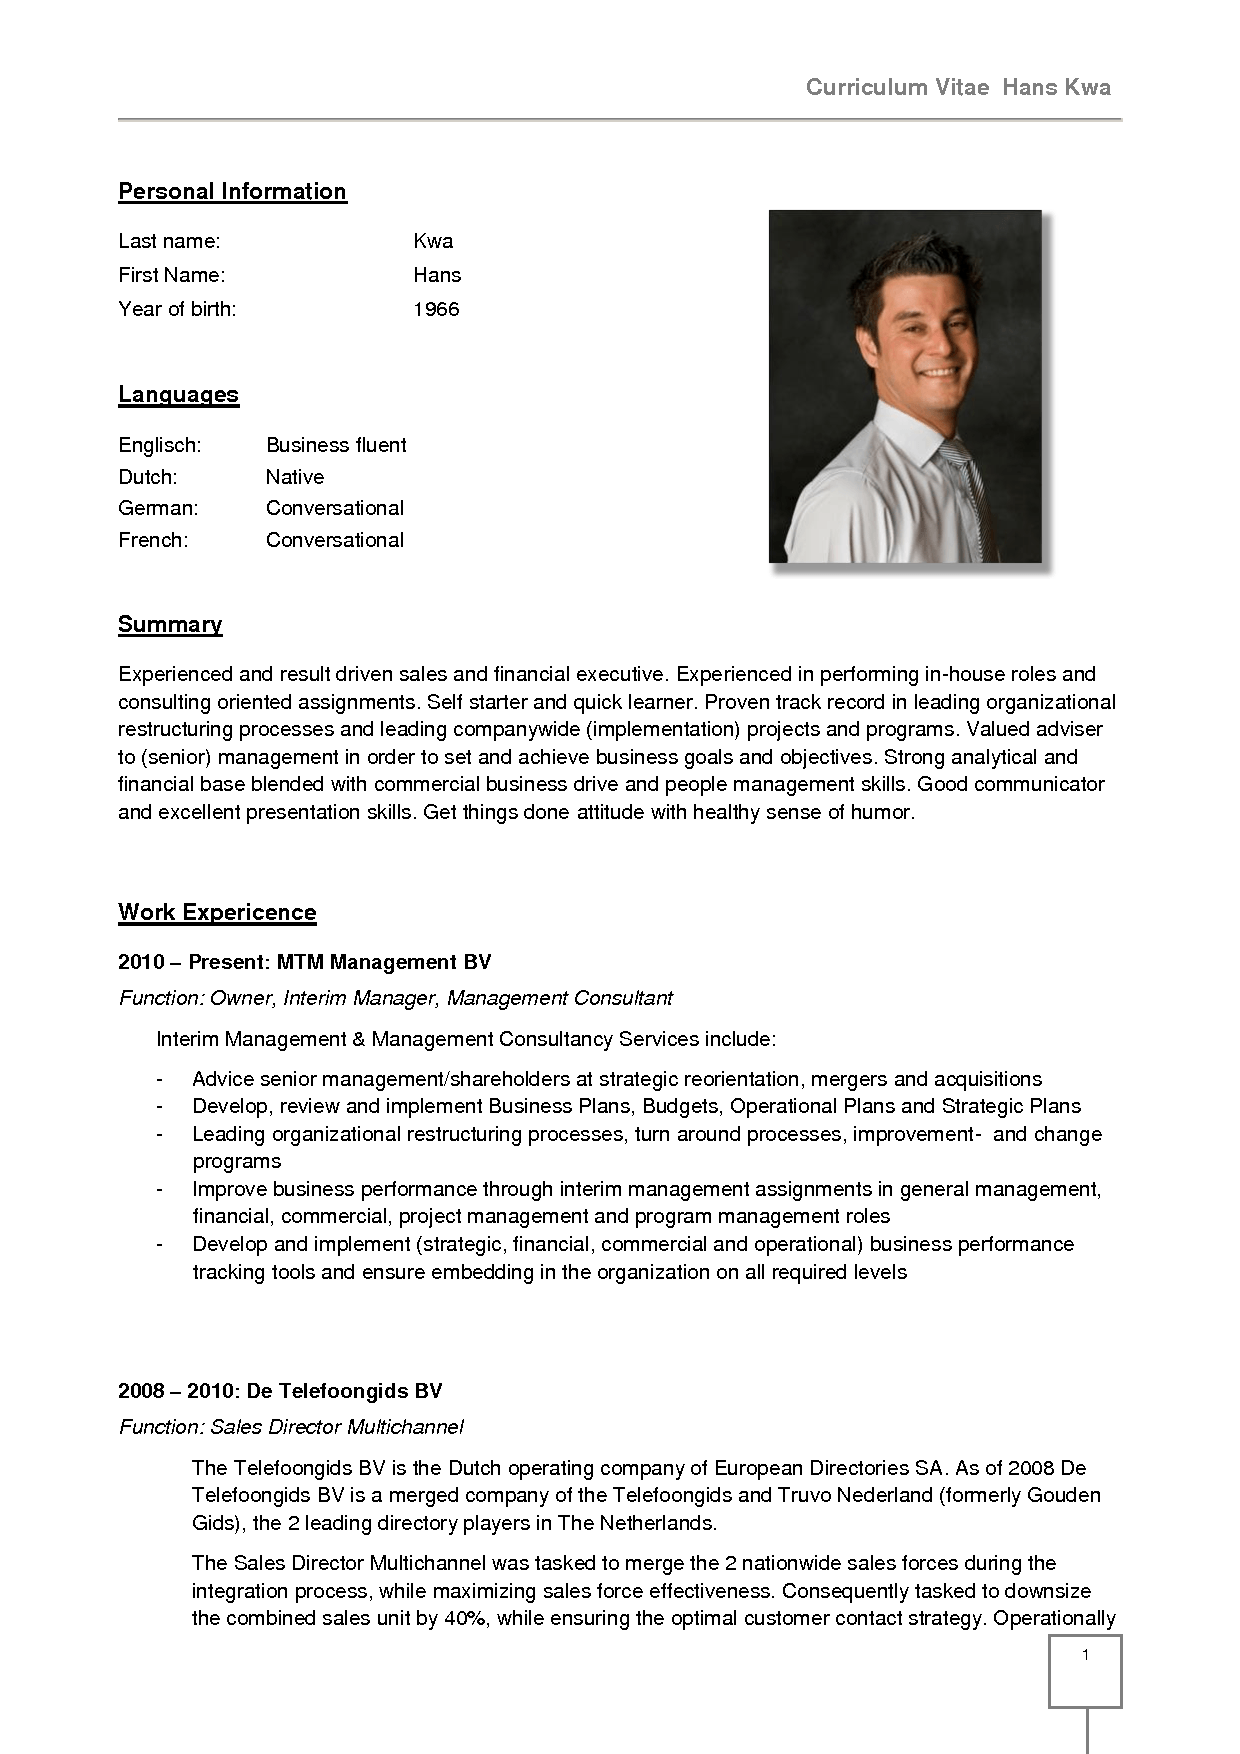 Cv Template Germany Cvtemplate